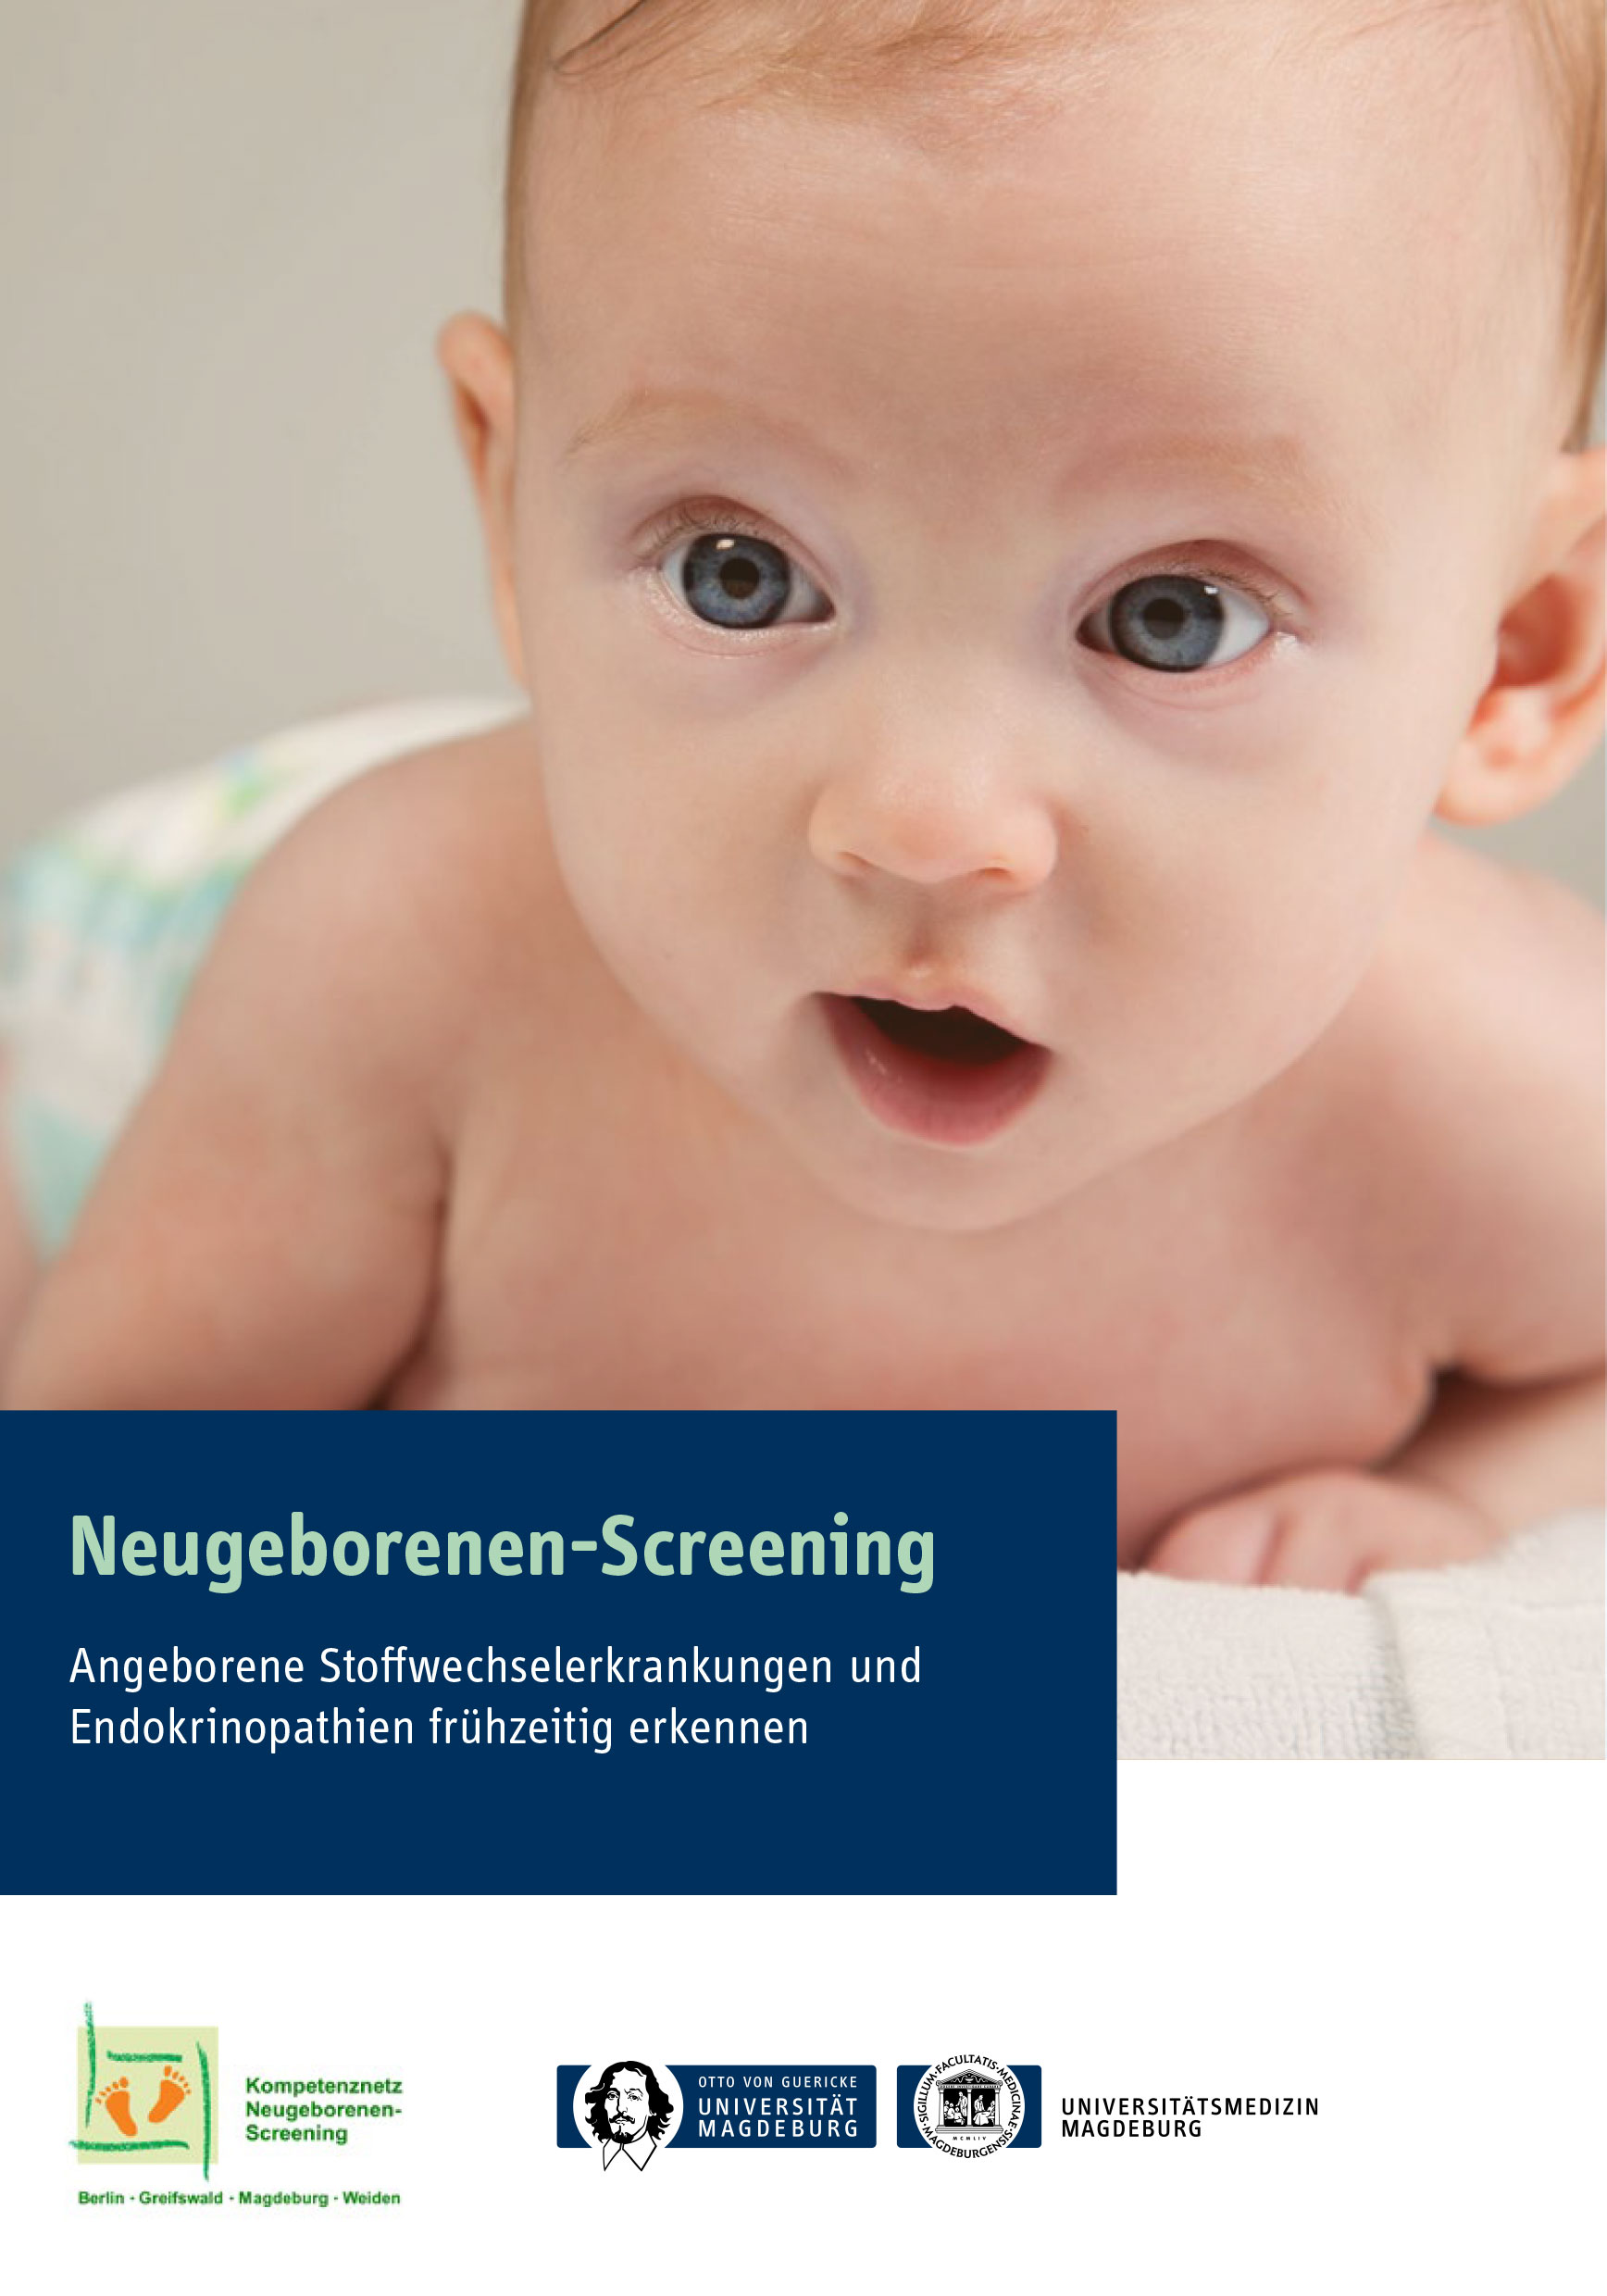 Neugeborenen-Screening